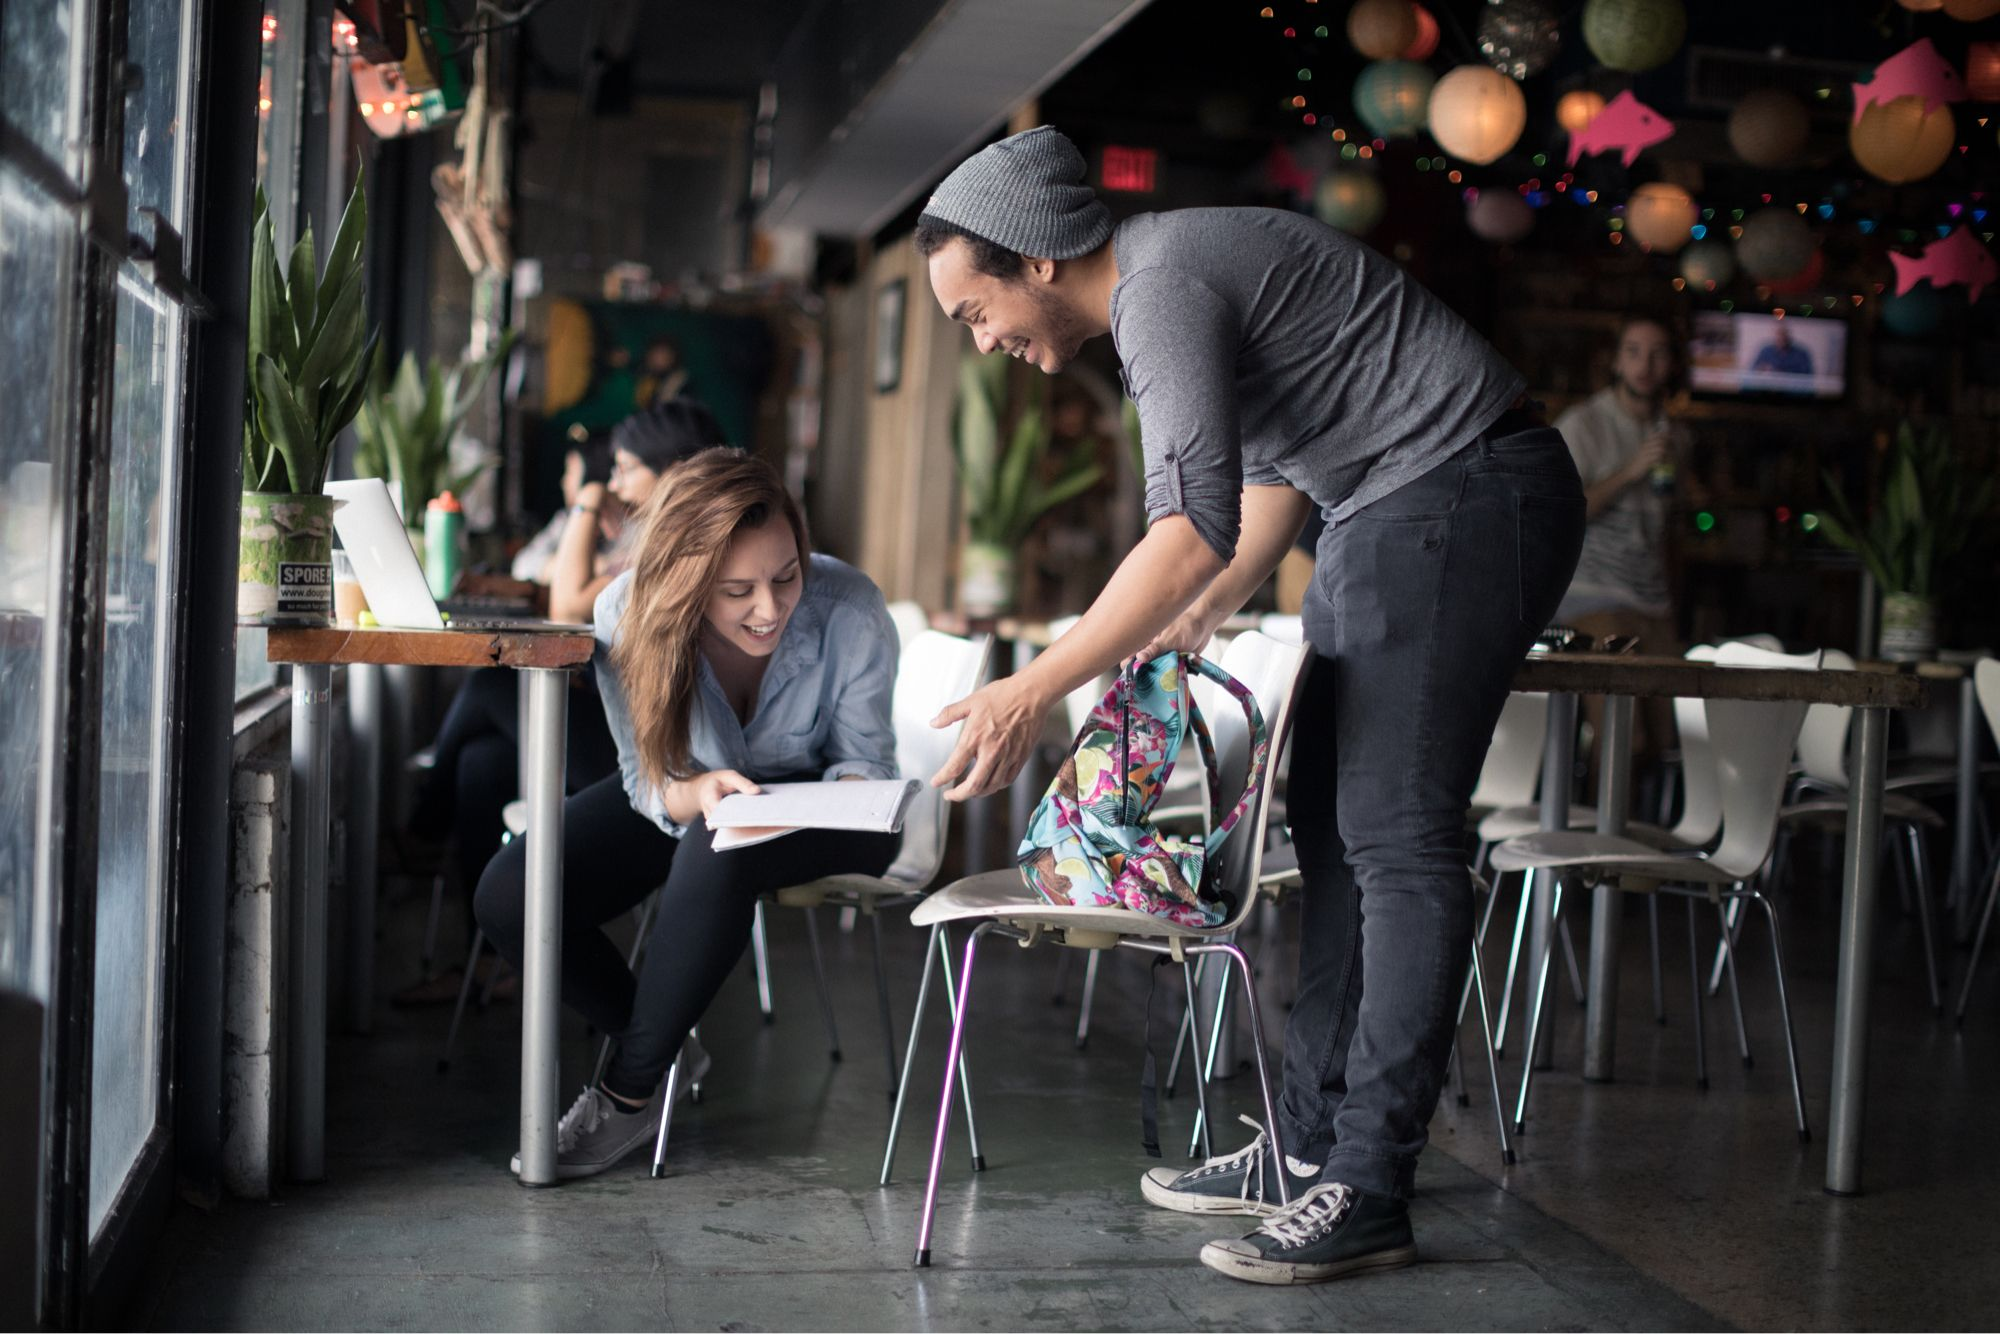 Two college students laughing at an assignment in a local coffee shop.